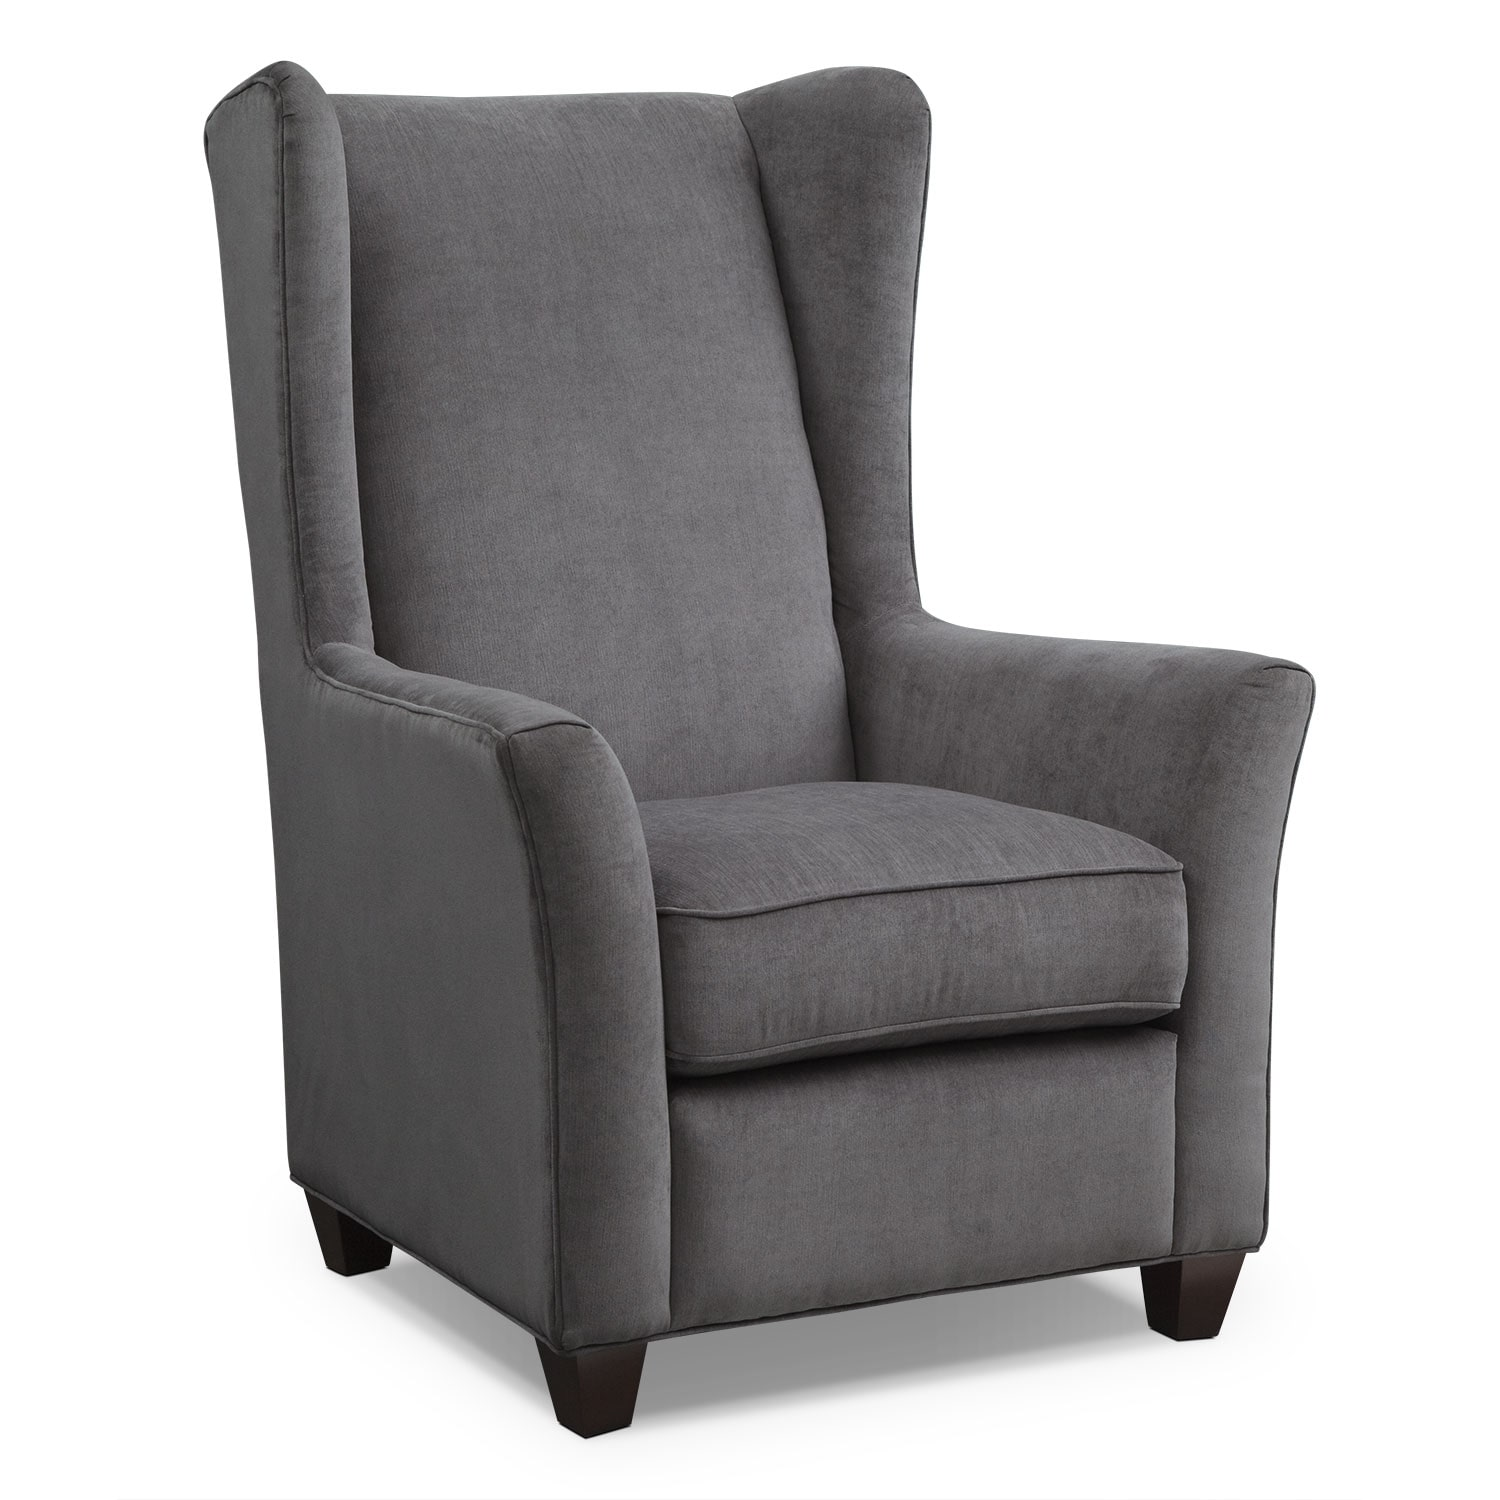 Living Room Furniture - Corrine Accent Chair